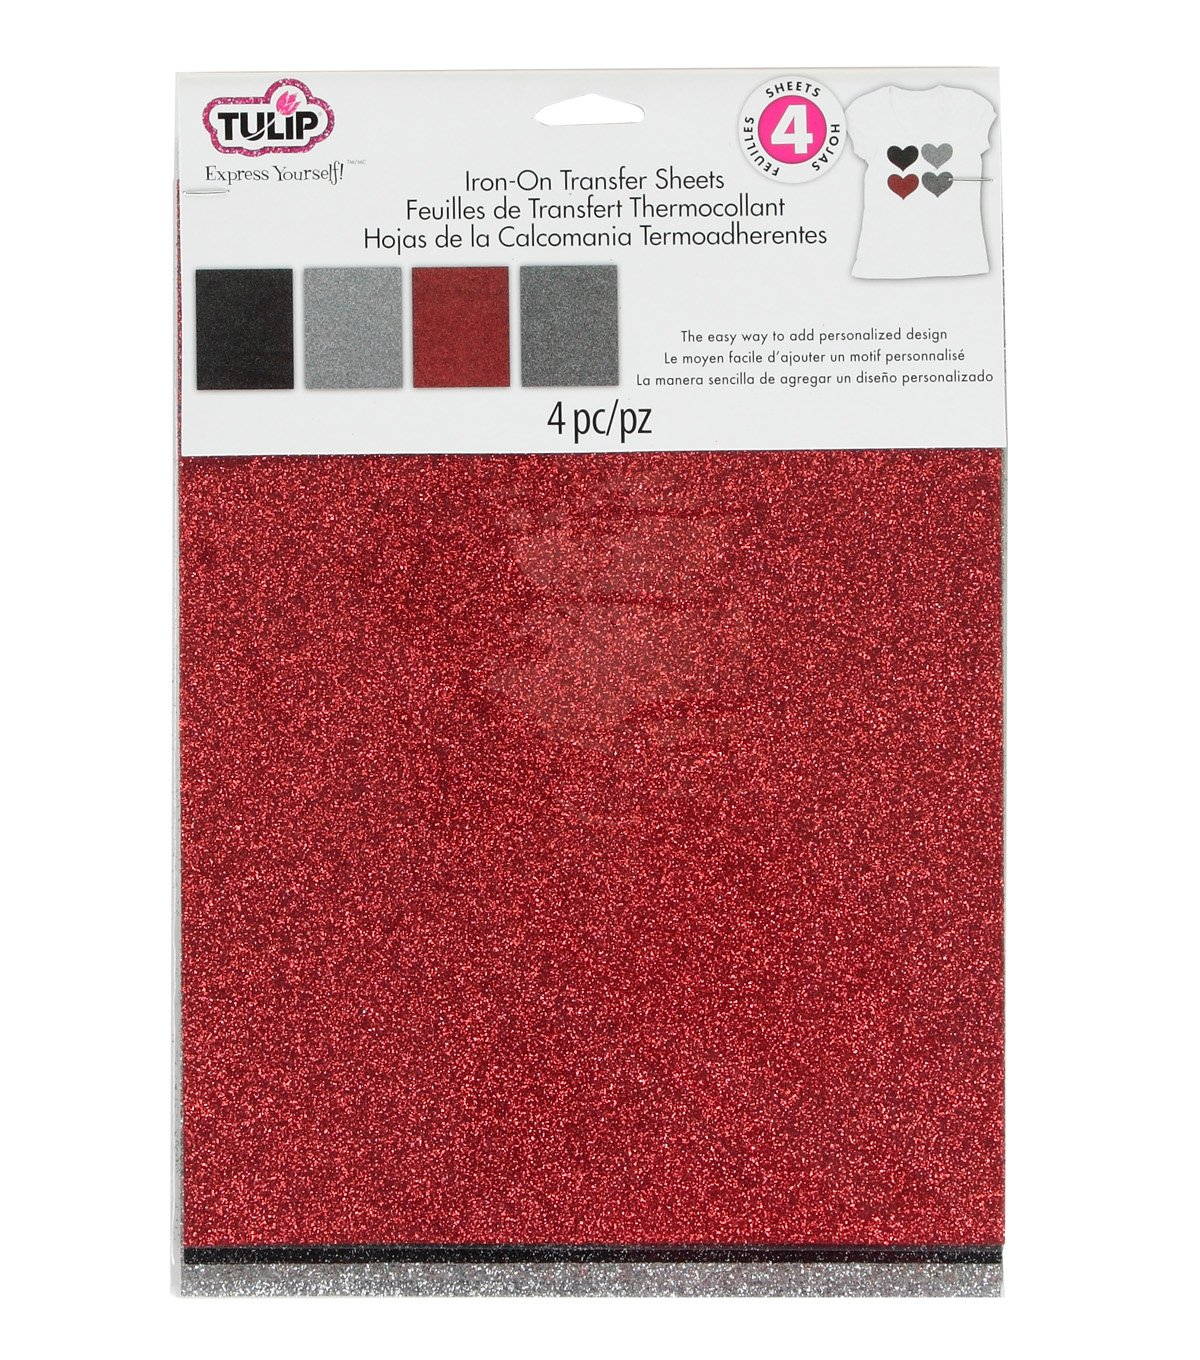 Iron On Transfer Sheets 8-1/2in x 11in Twilight Multi 4pk